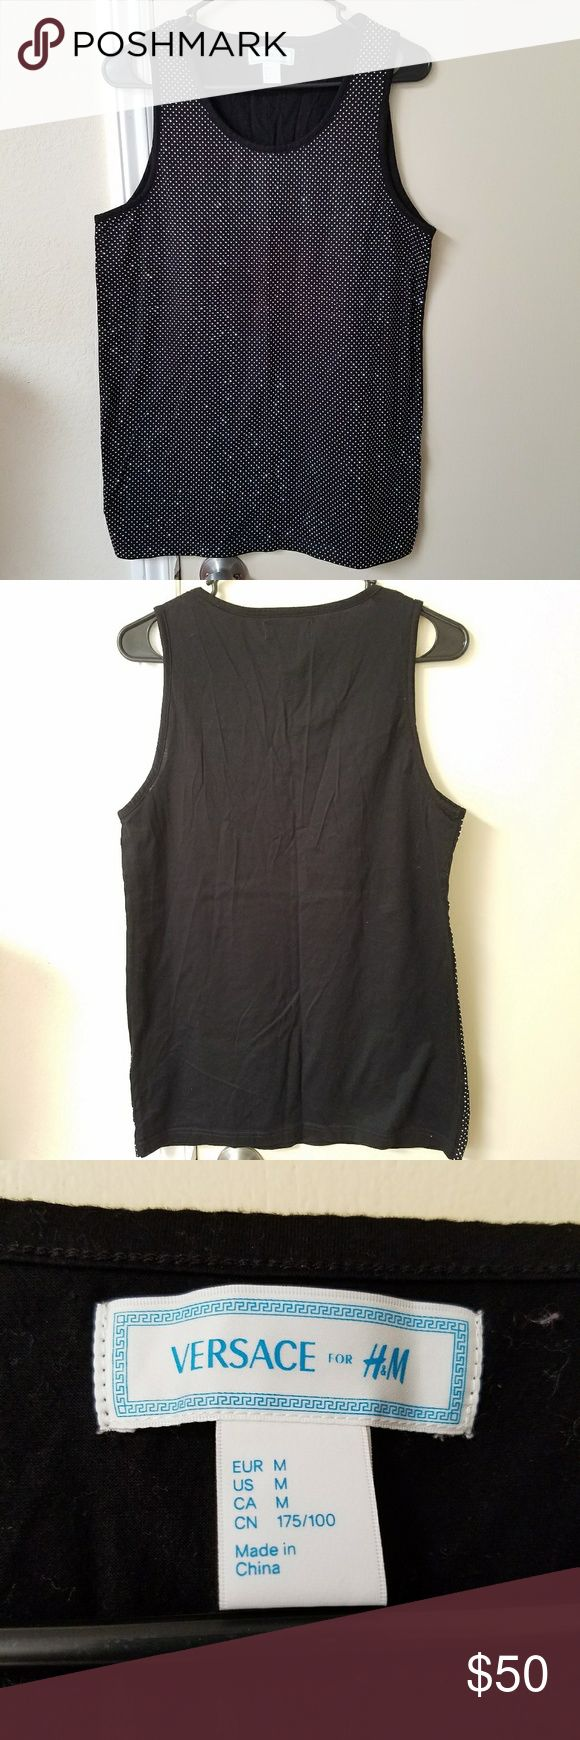 "Versace for H&M Mens Studded Tank Top Versace for H&M Mens studded tank top.  Black, size Medium  Tank top looks and feels like it has never been worn or washed.  Item could be new without tags, but I am the second owner and cannot back this up.  Approximate measurements (lying flat, unstretched): Length: 28"" Waist and hip: 18.5"" Armpit to armpit: 18"" Versace for H&M Shirts Tank Tops"